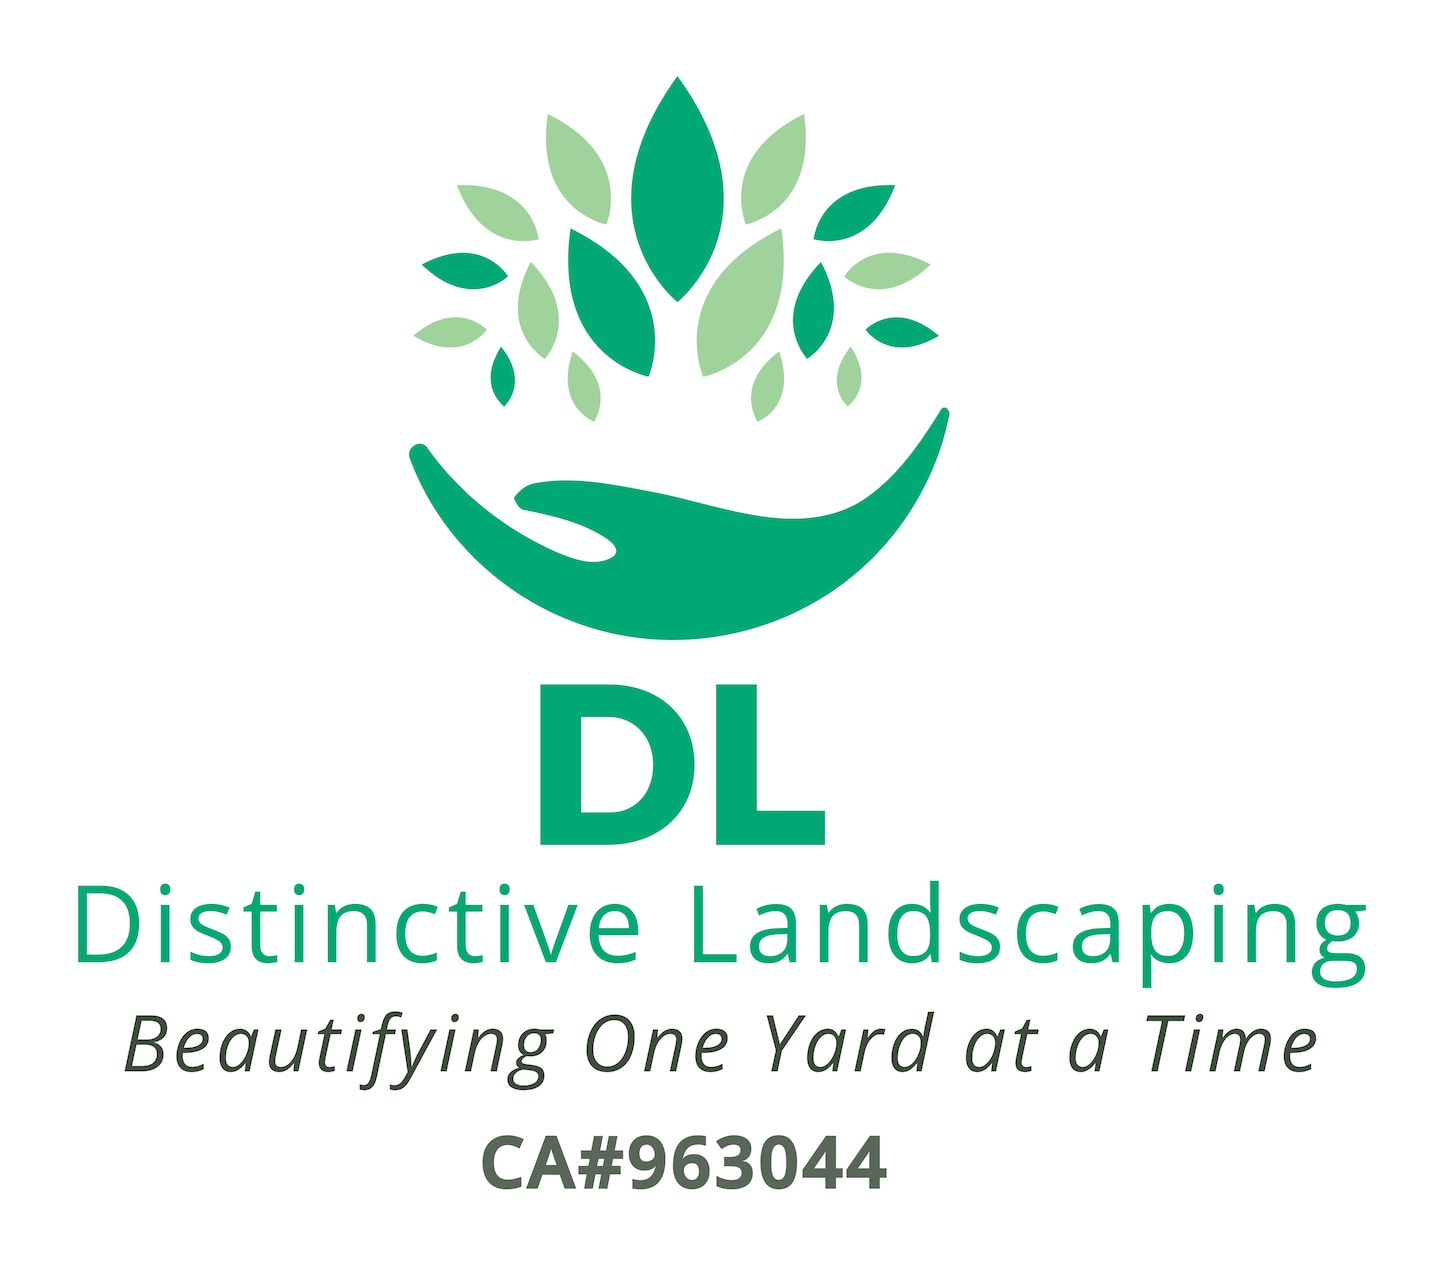 Distinctive Landscaping Services Inc